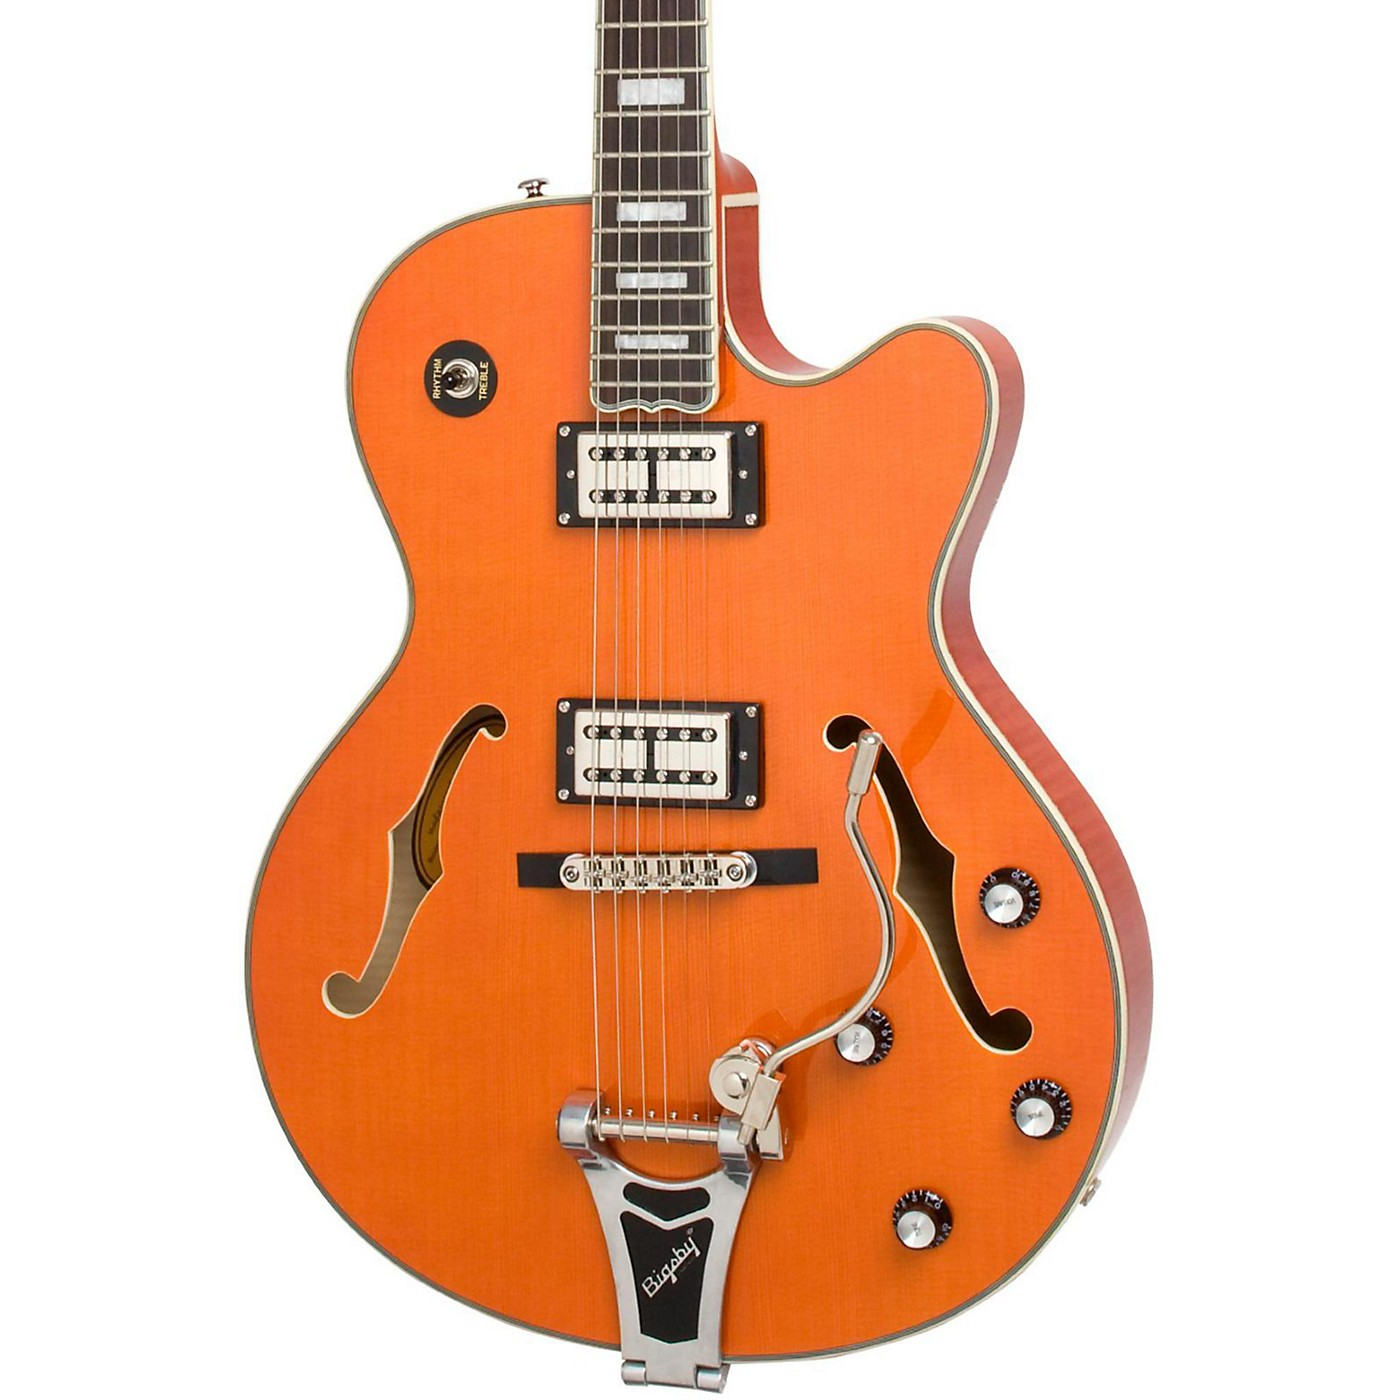 Epiphone Emperor Swingster Hollowbody Electric Guitar thumbnail